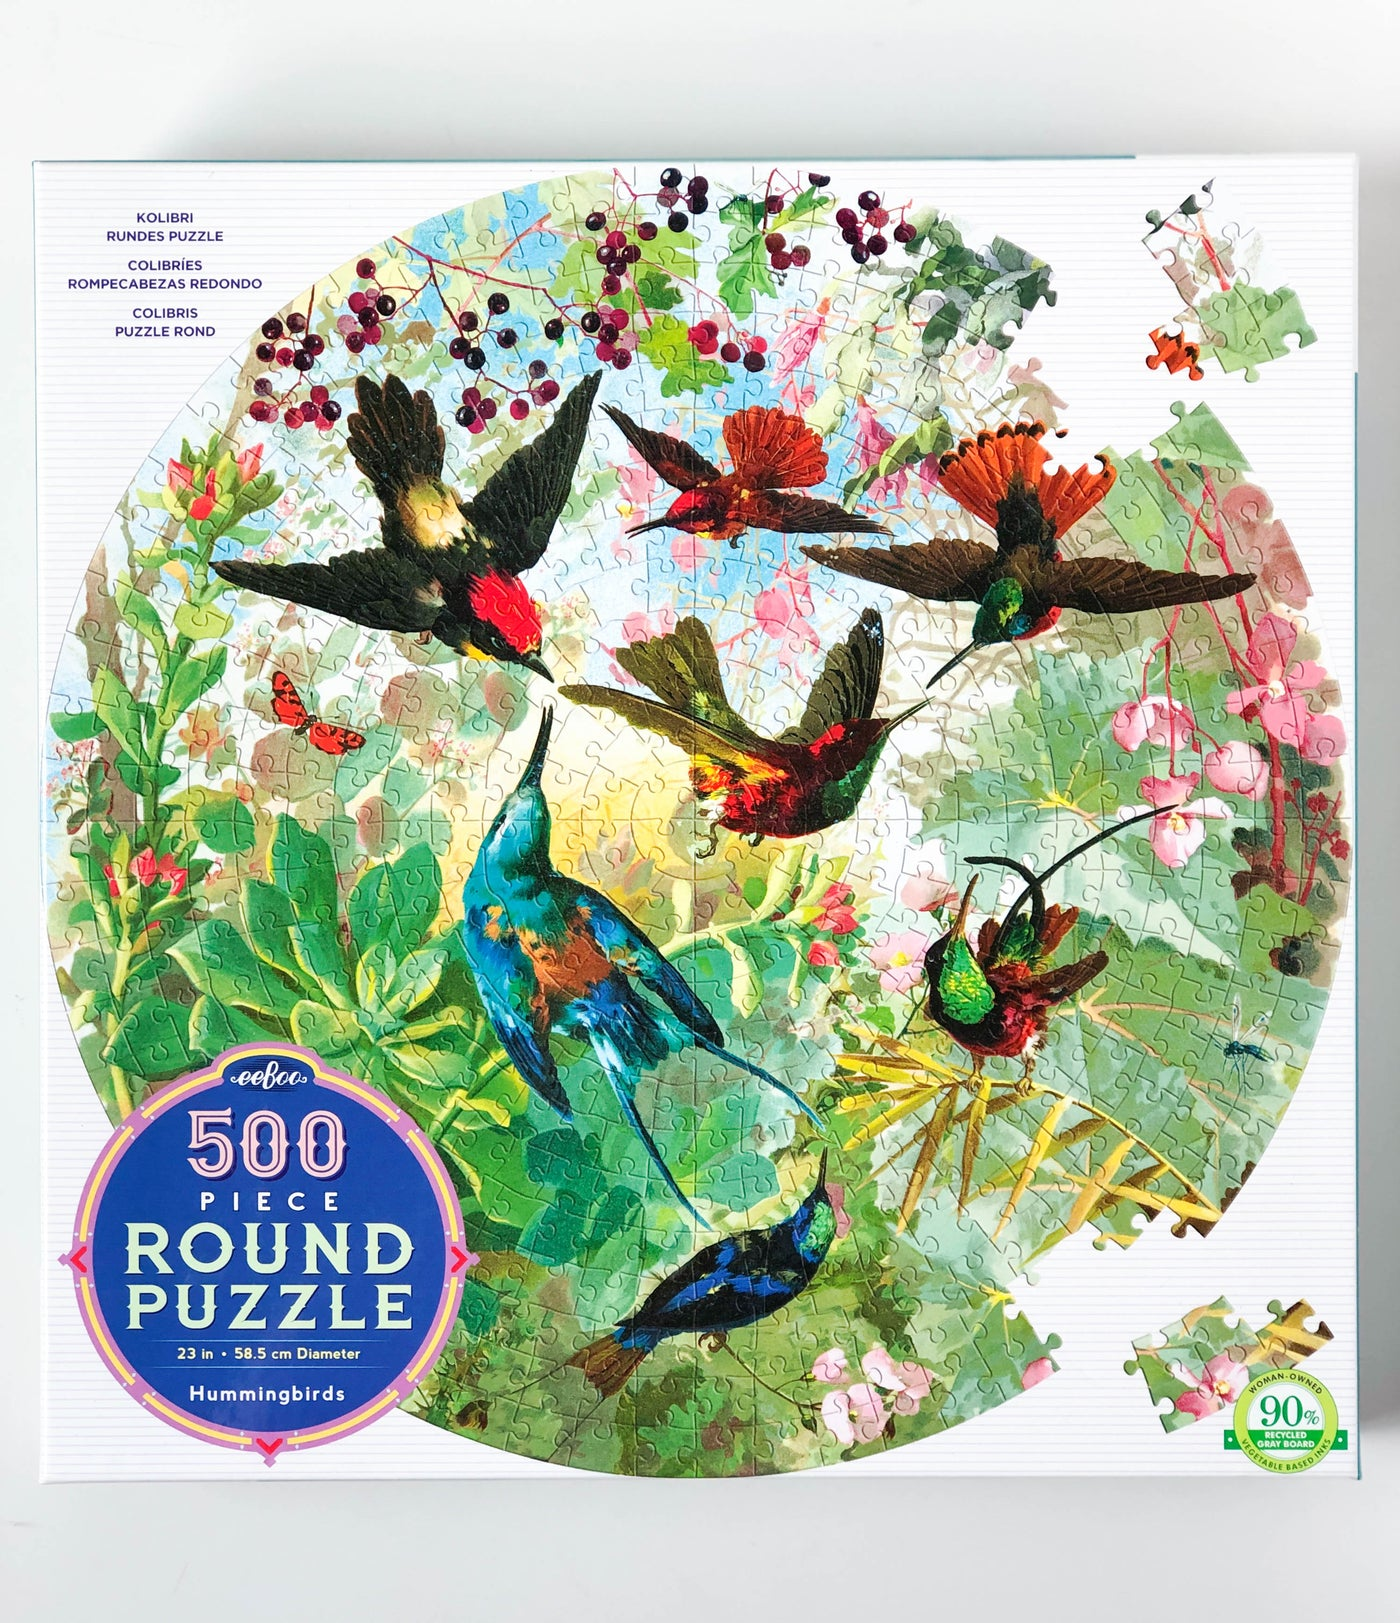 Hummingbirds | 500 Piece Round Puzzle